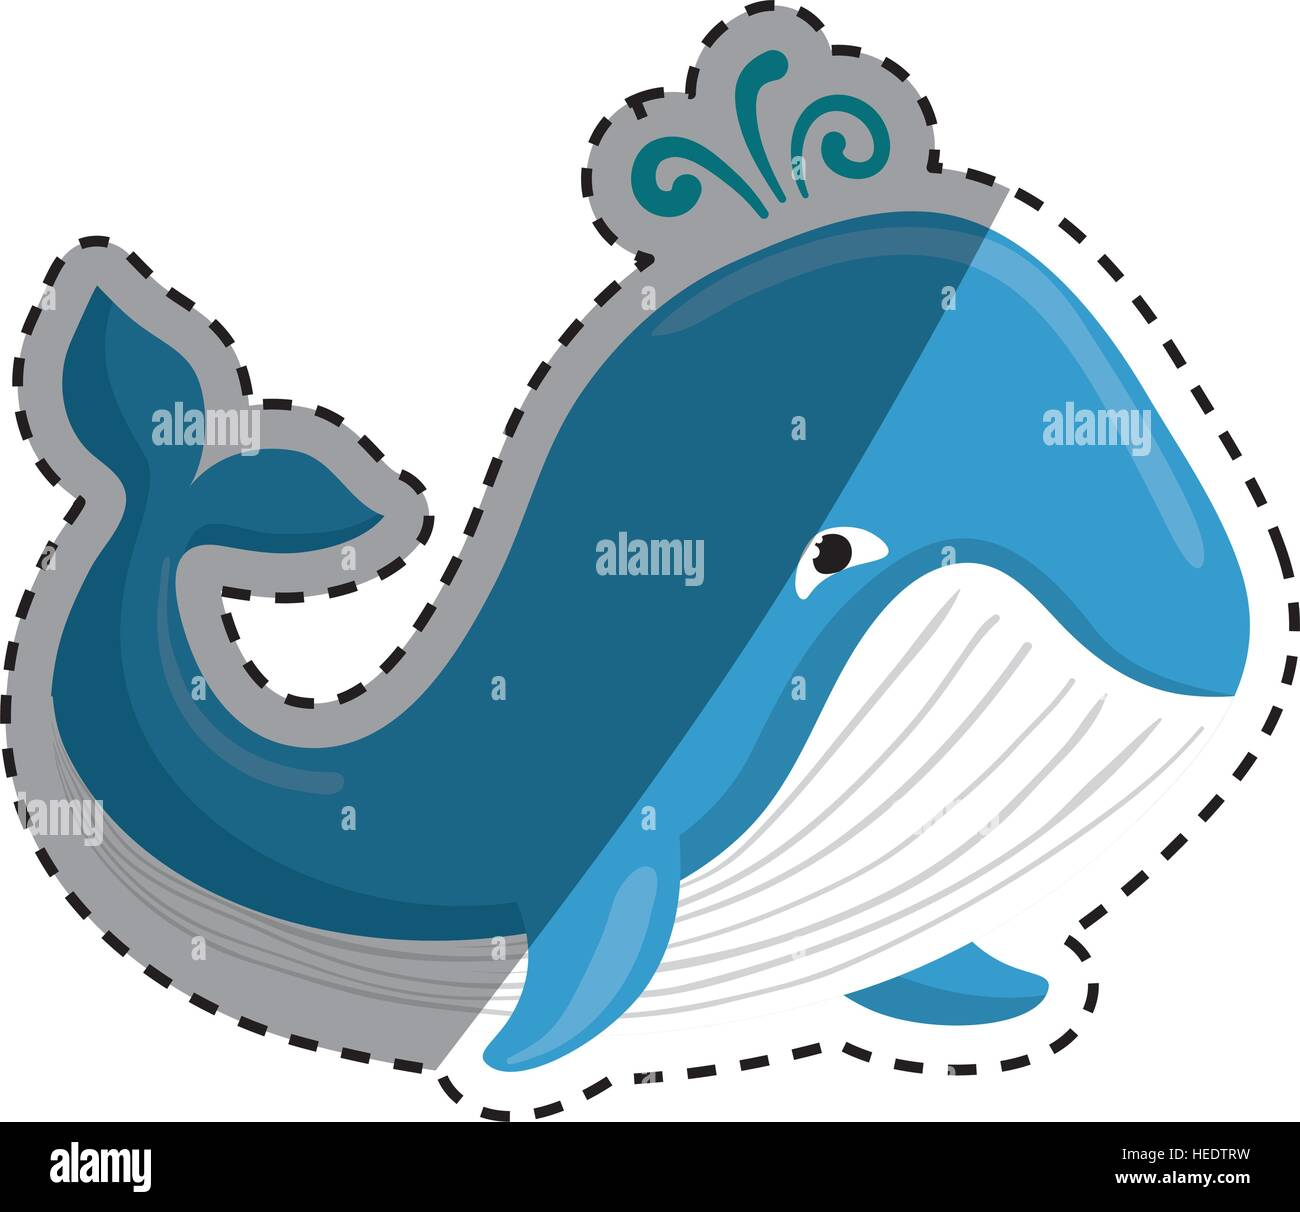 Cute whale in water cartoon isolated illustration stock photography - Cute Whale Cartoon Icon Vector Illustration Graphic Design